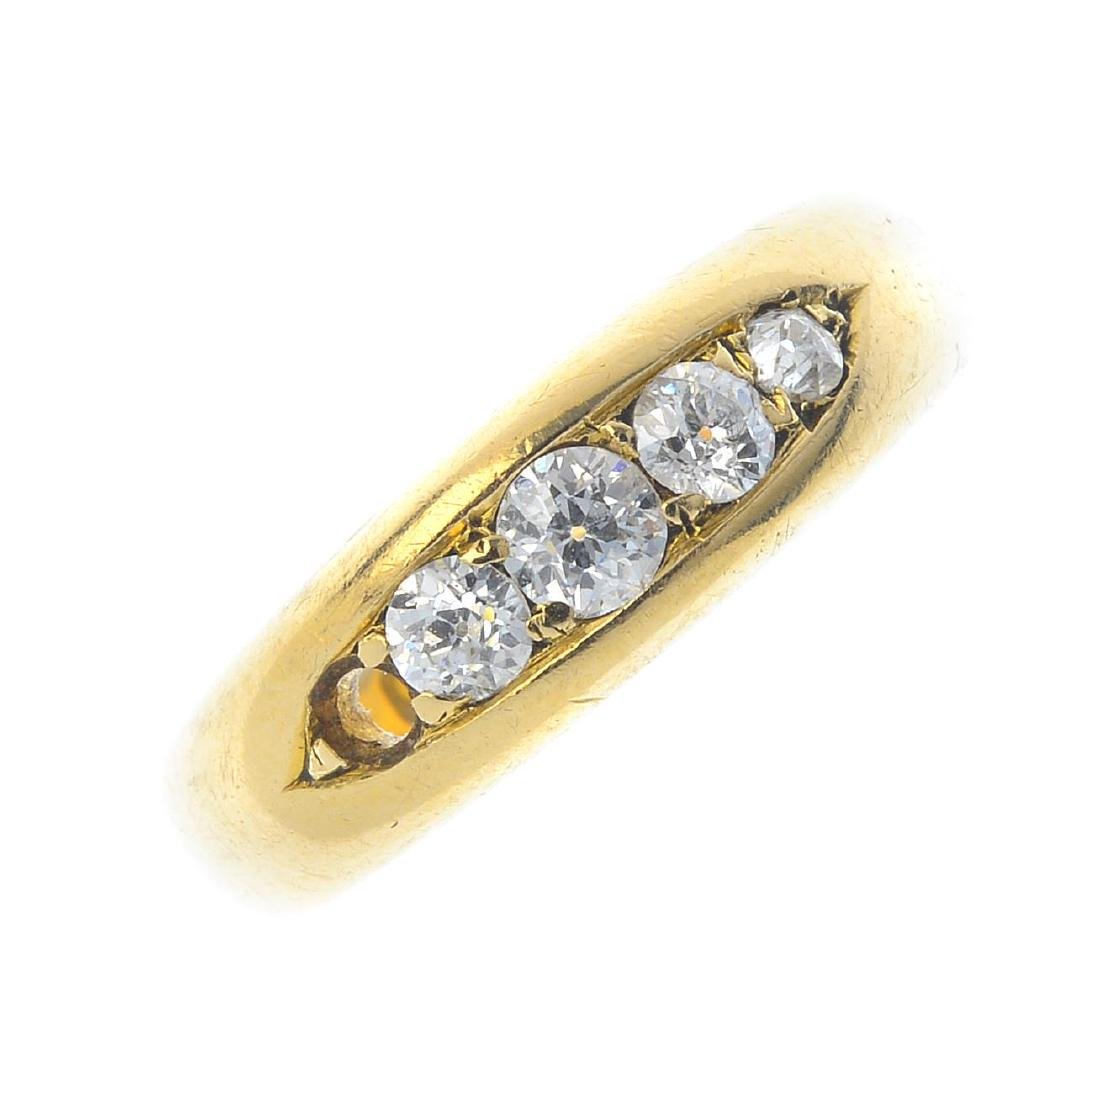 An Edwardian 18ct gold diamond five-stone ring. The